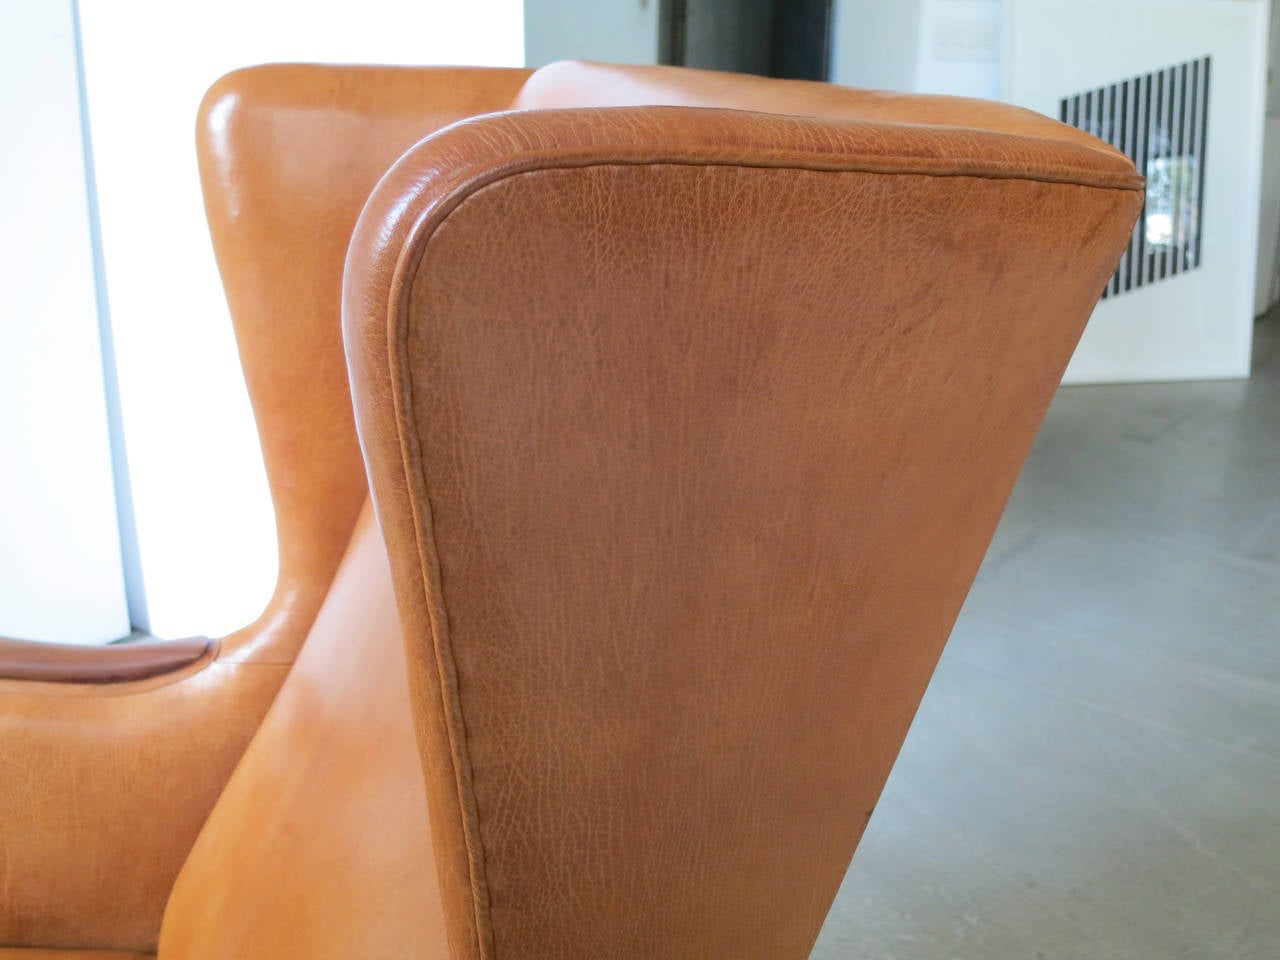 1930s Wingback Chair in Nigerian Leather and Cuban Mahogany by Frits Henningsen 6